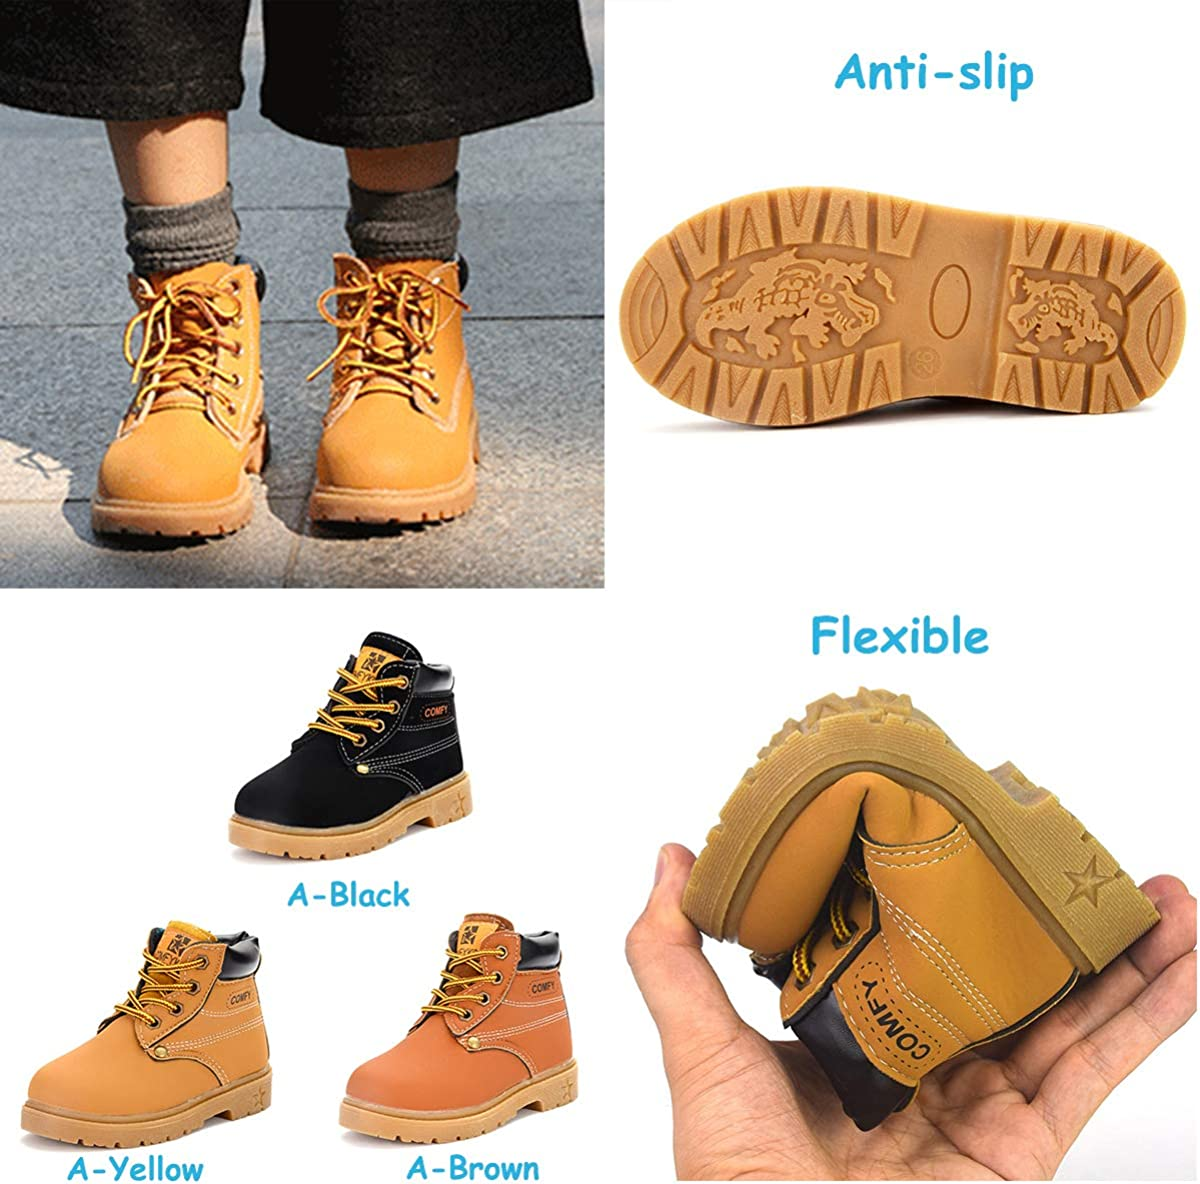 BEBARFER Toddler Kids Boys Girls Boots Waterproof Ankle Martin Hiking Boots Anti-Slip Rubber Sole Outdoor Shoes Toddler//Little Kid